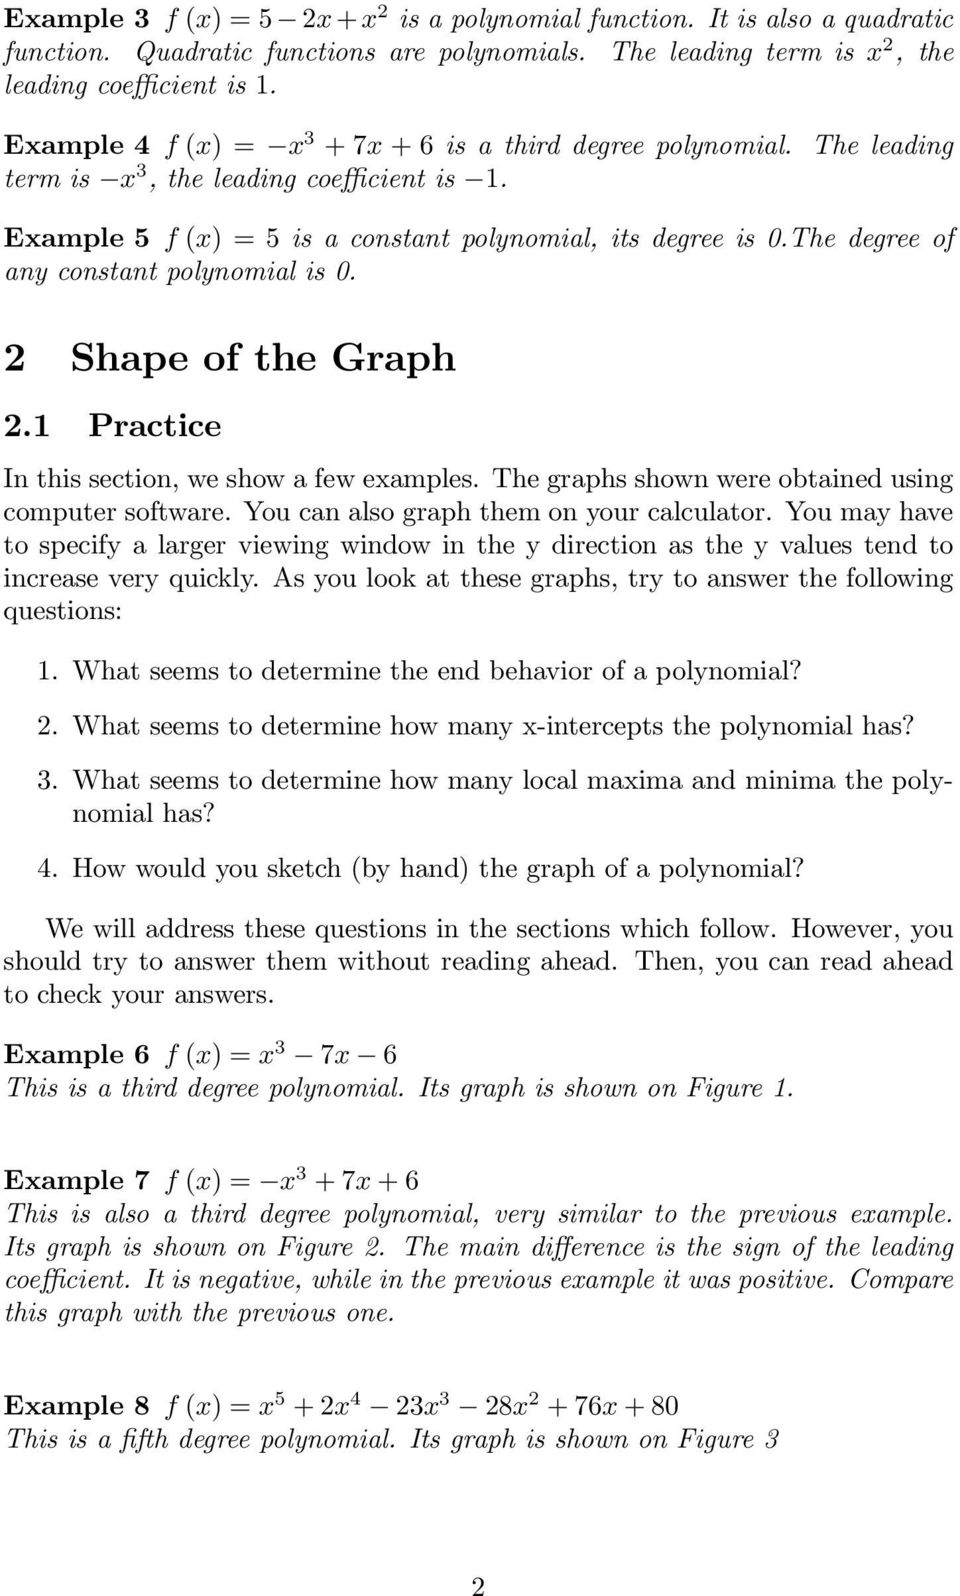 The degree of any constant polynomial is 0. 2 Shape of the Graph 2.1 Practice In this section, we show a few examples. The graphs shown were obtained using computer software.